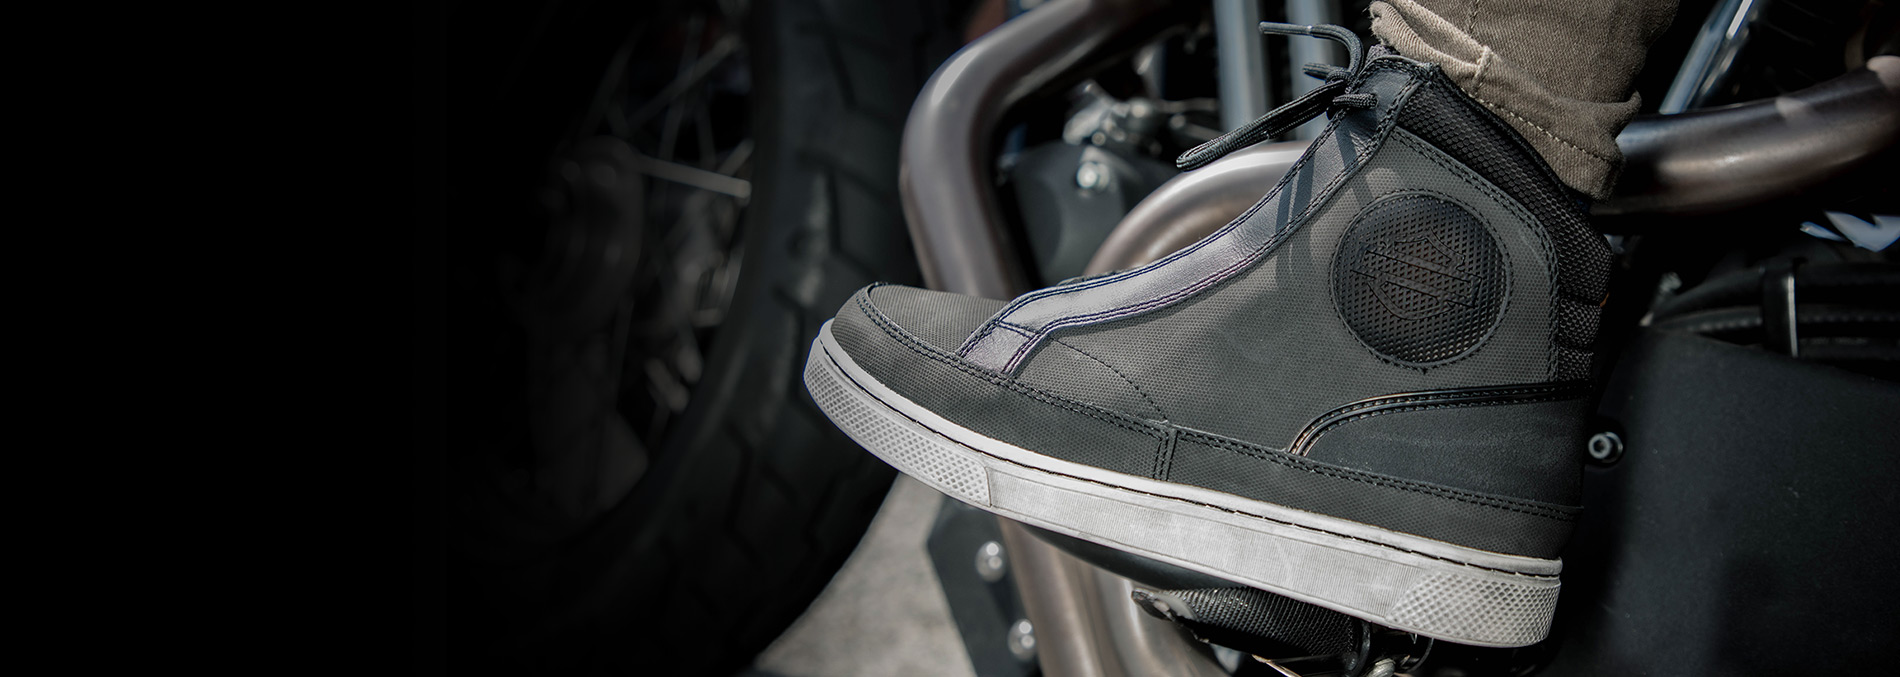 Grey hi-top sneaker, that functions like a boot, worn by a motorcycle rider